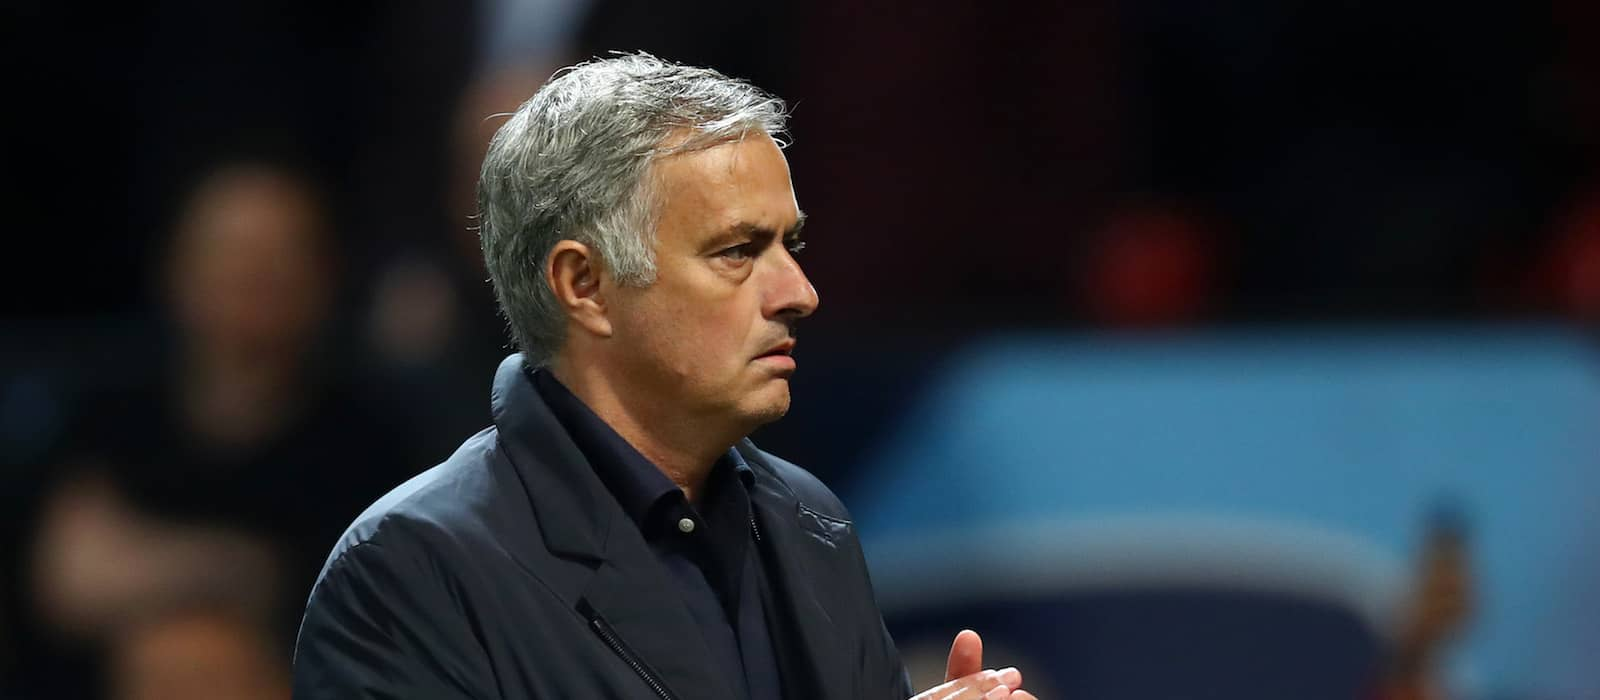 Jose Mourinho won't be sacked by Manchester United in aftermath of Newcastle fightback, claims Gary Neville